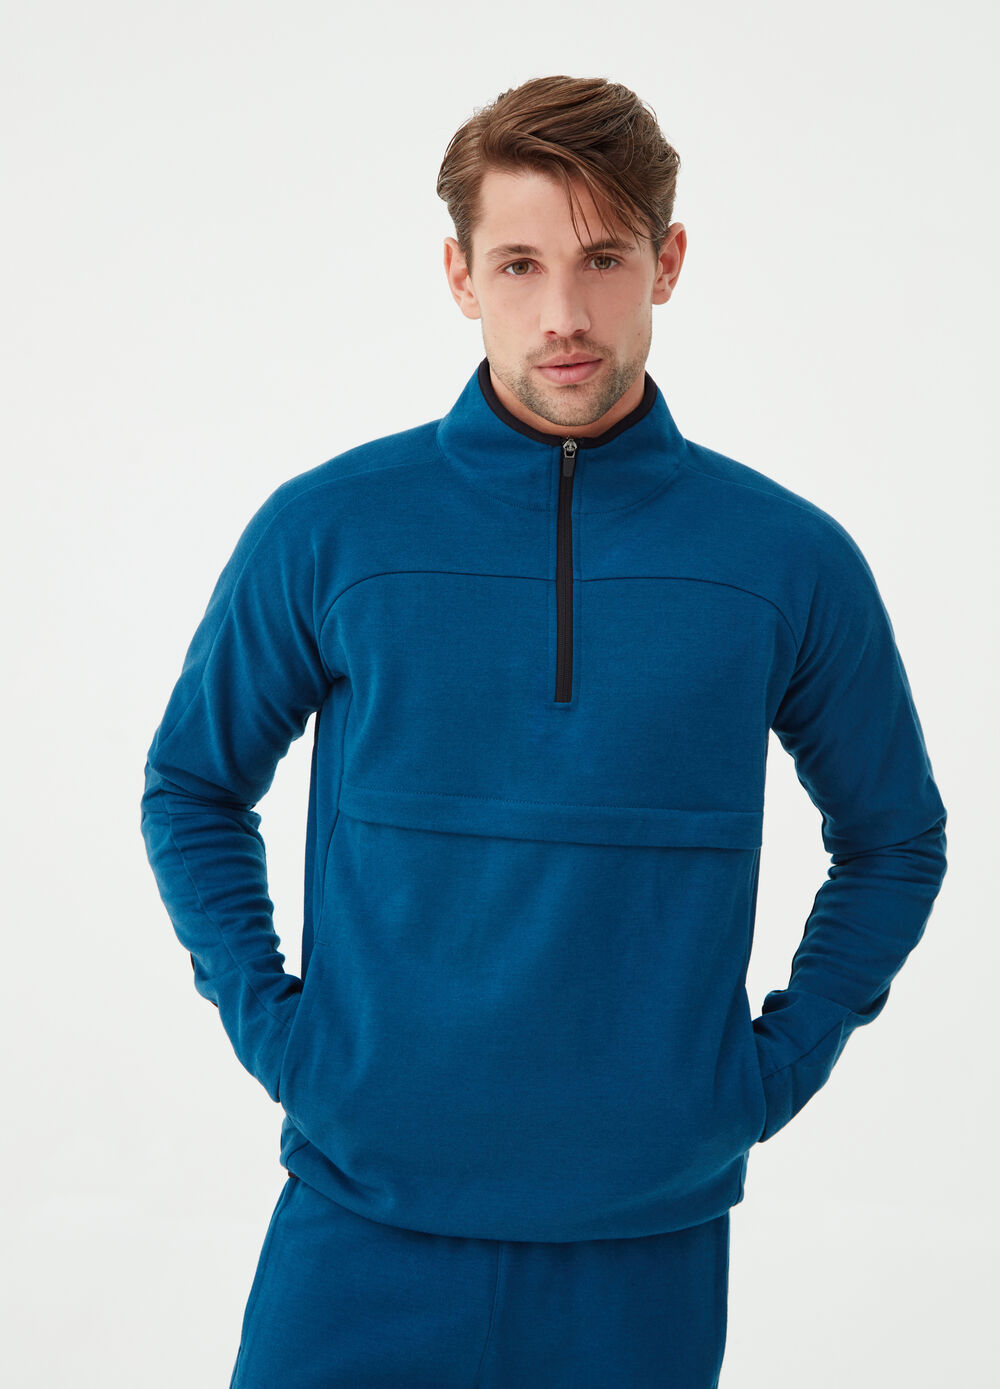 Gym sweatshirt with high neck and zip